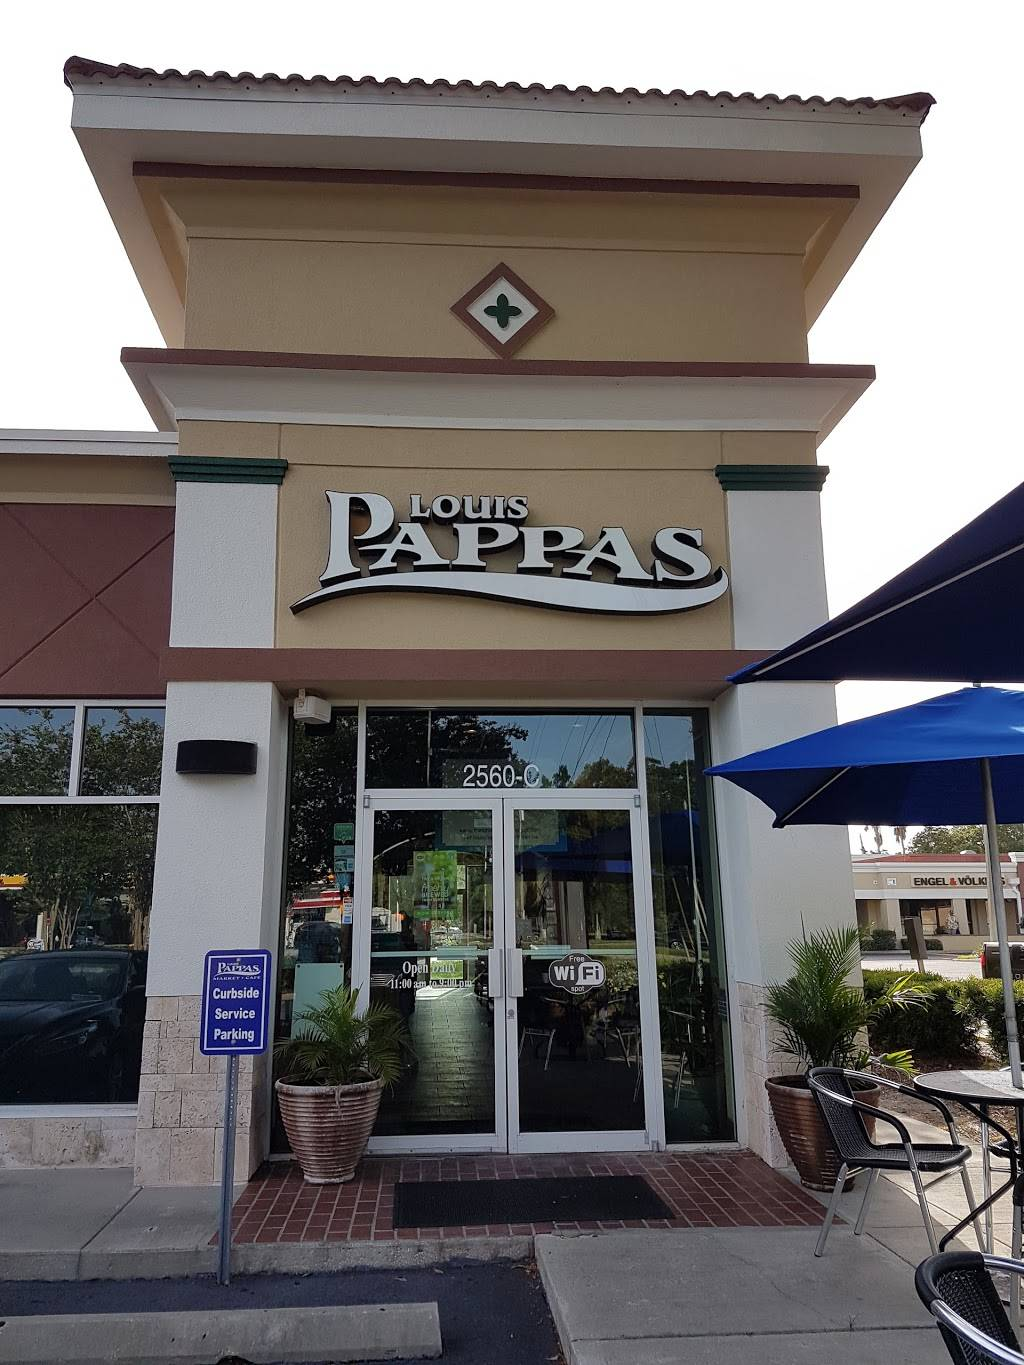 Louis Pappas Market Cafe | meal delivery | 2560 McMullen Booth Rd, Clearwater, FL 33761, USA | 7277973700 OR +1 727-797-3700